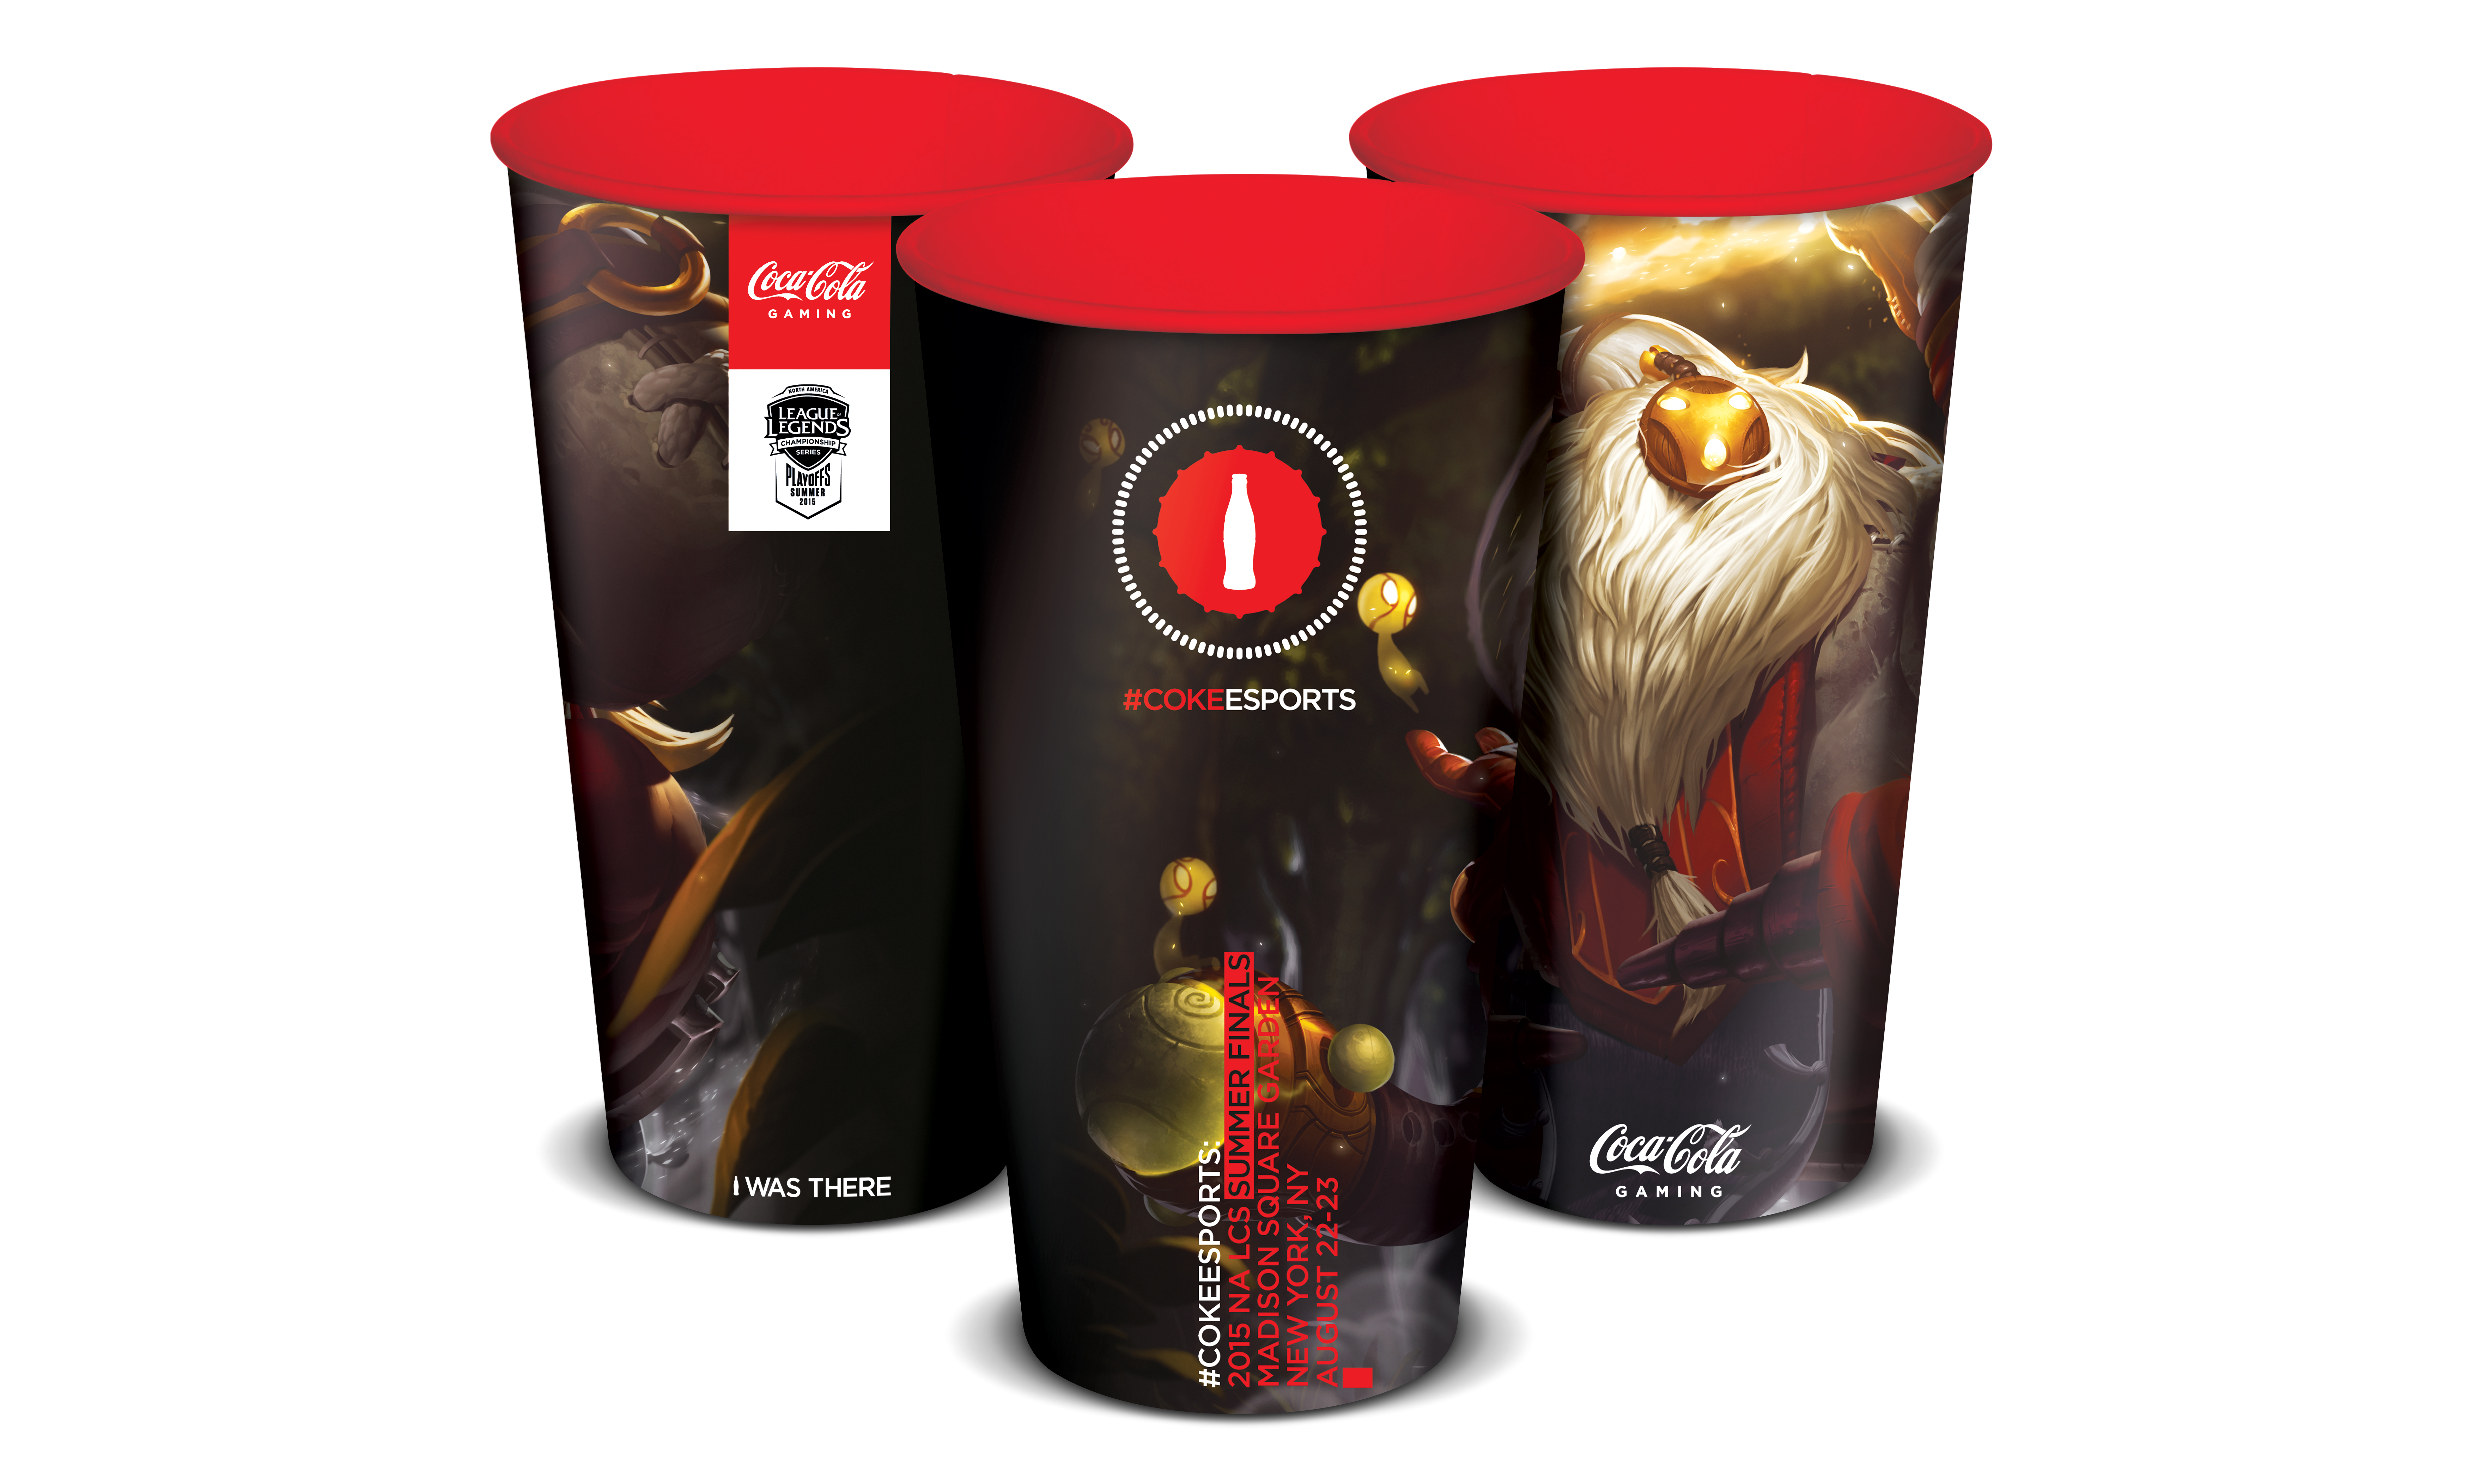 Coca-Cola will be supporting the League of Legends Madison Square Garden event with collectible cups.